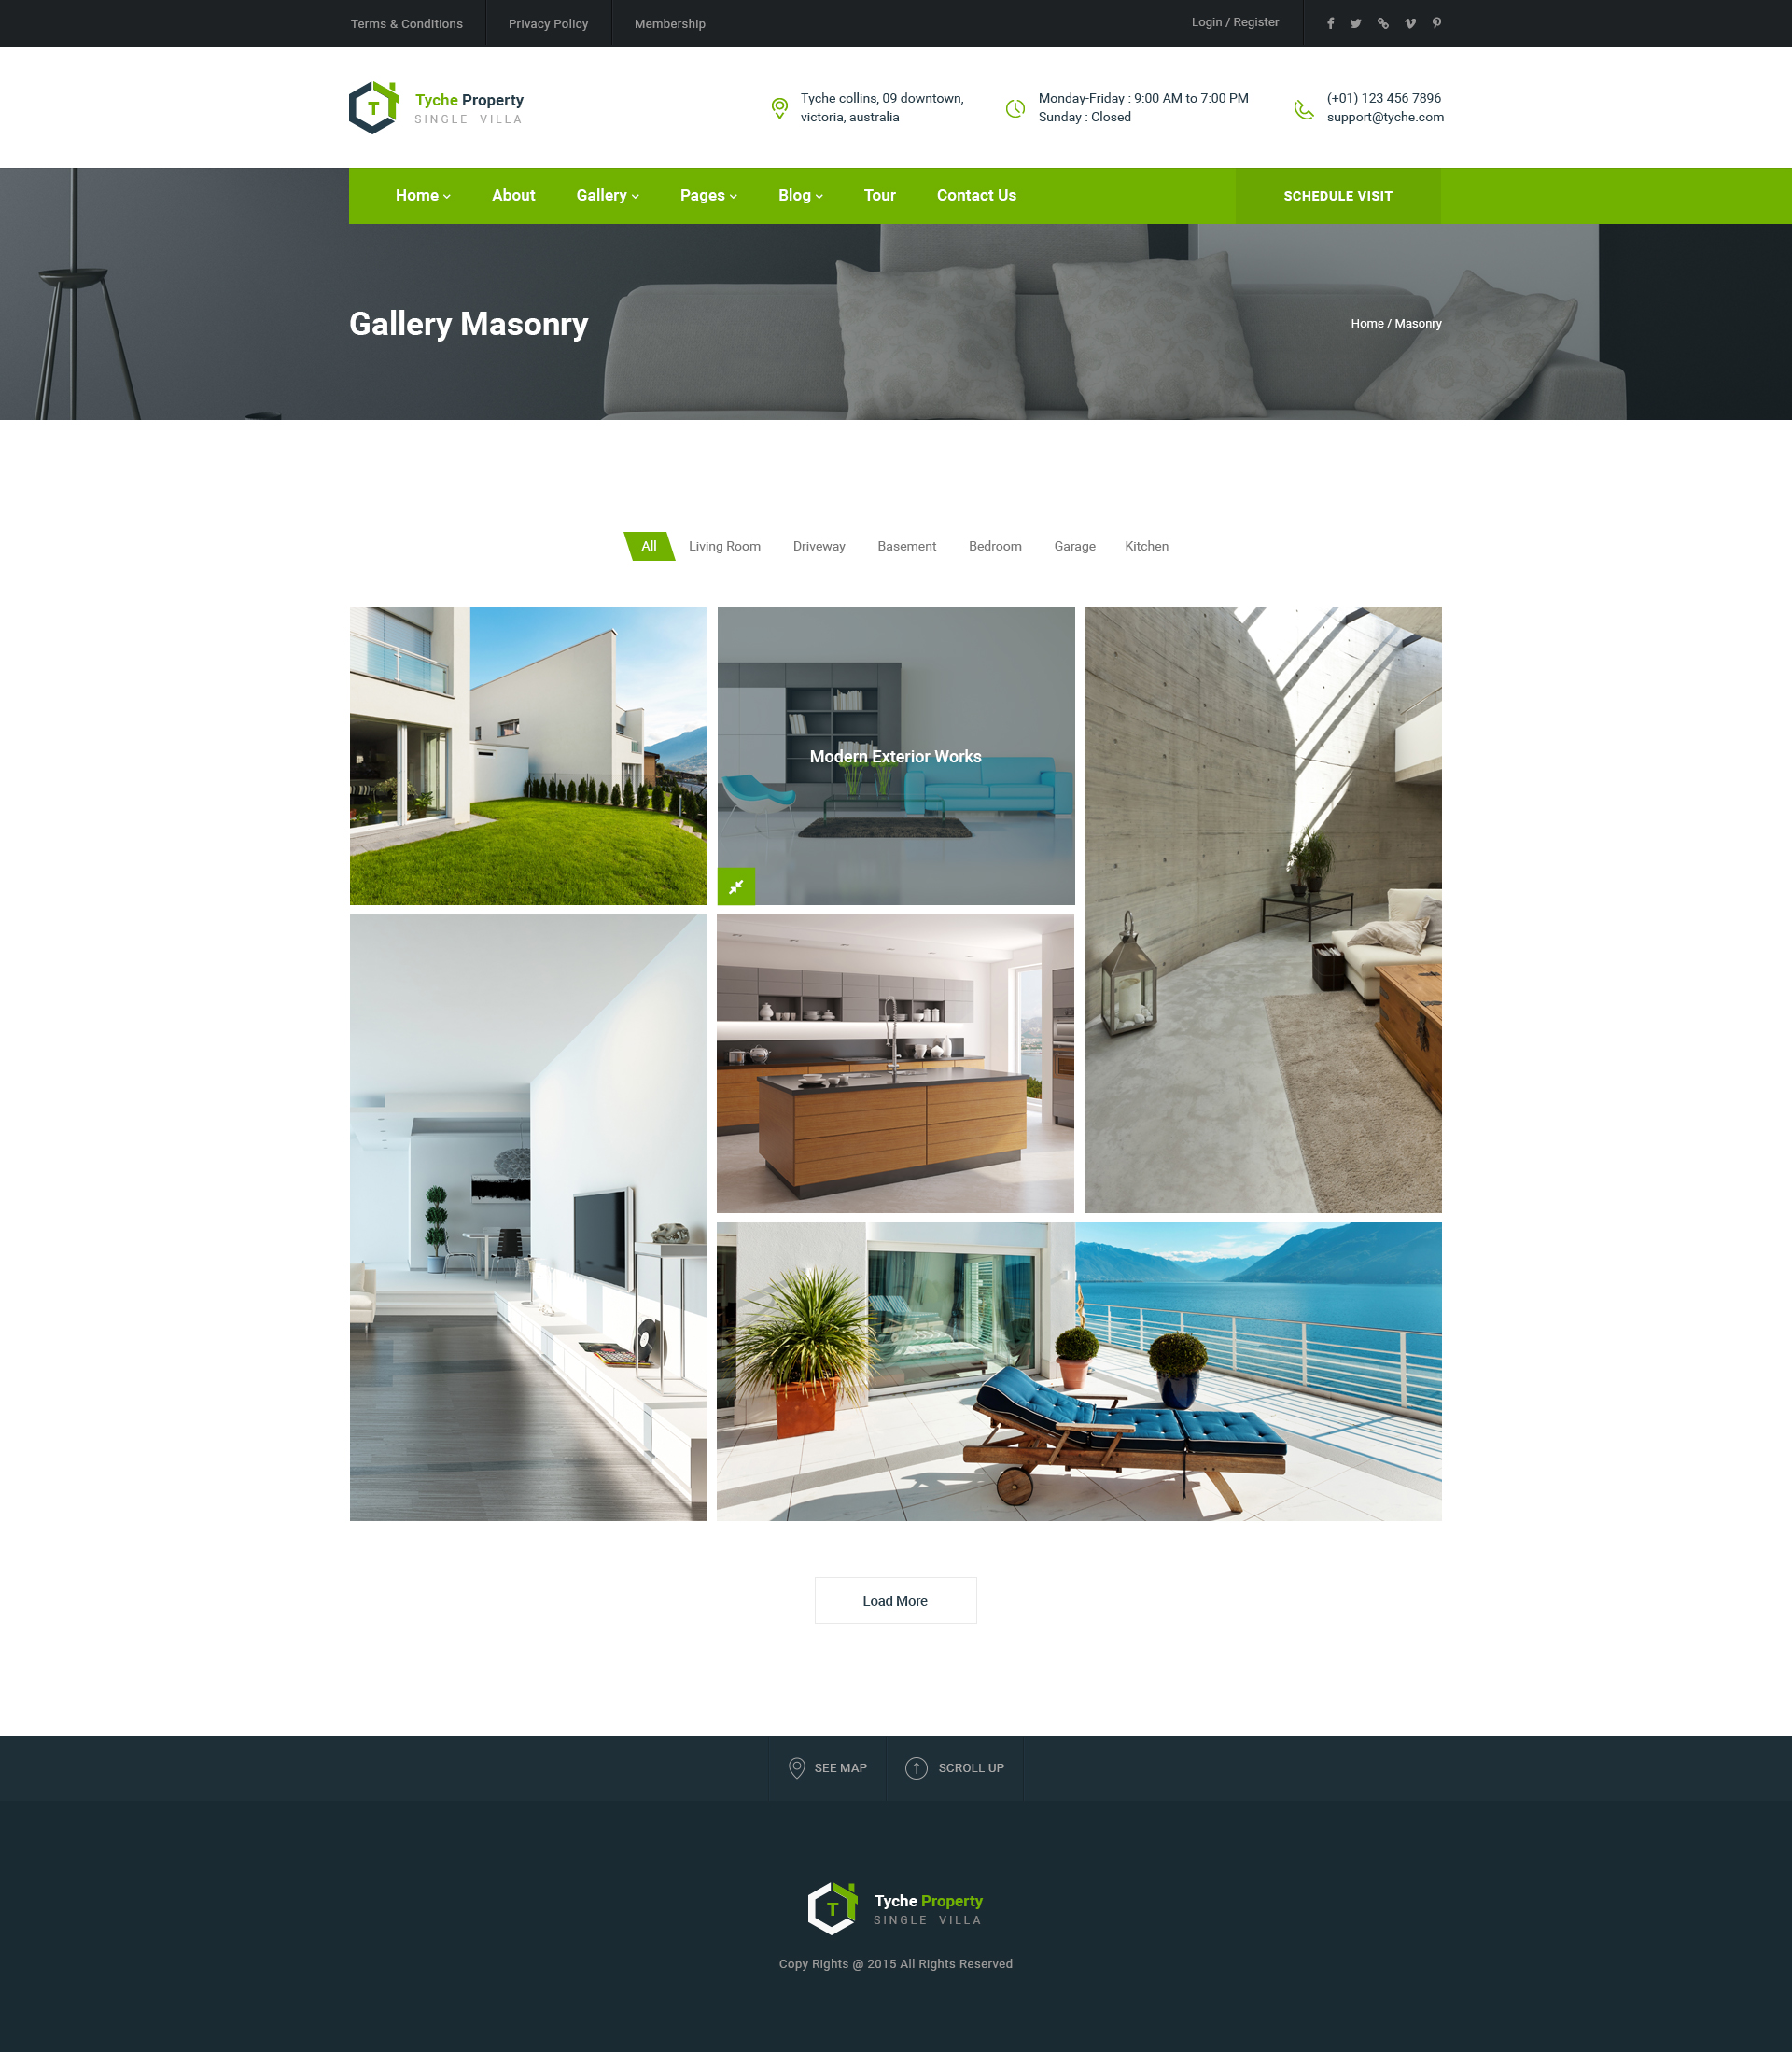 Tyche properties single property psd template by ifathemes tyche preview10 gallery masonryg pronofoot35fo Choice Image